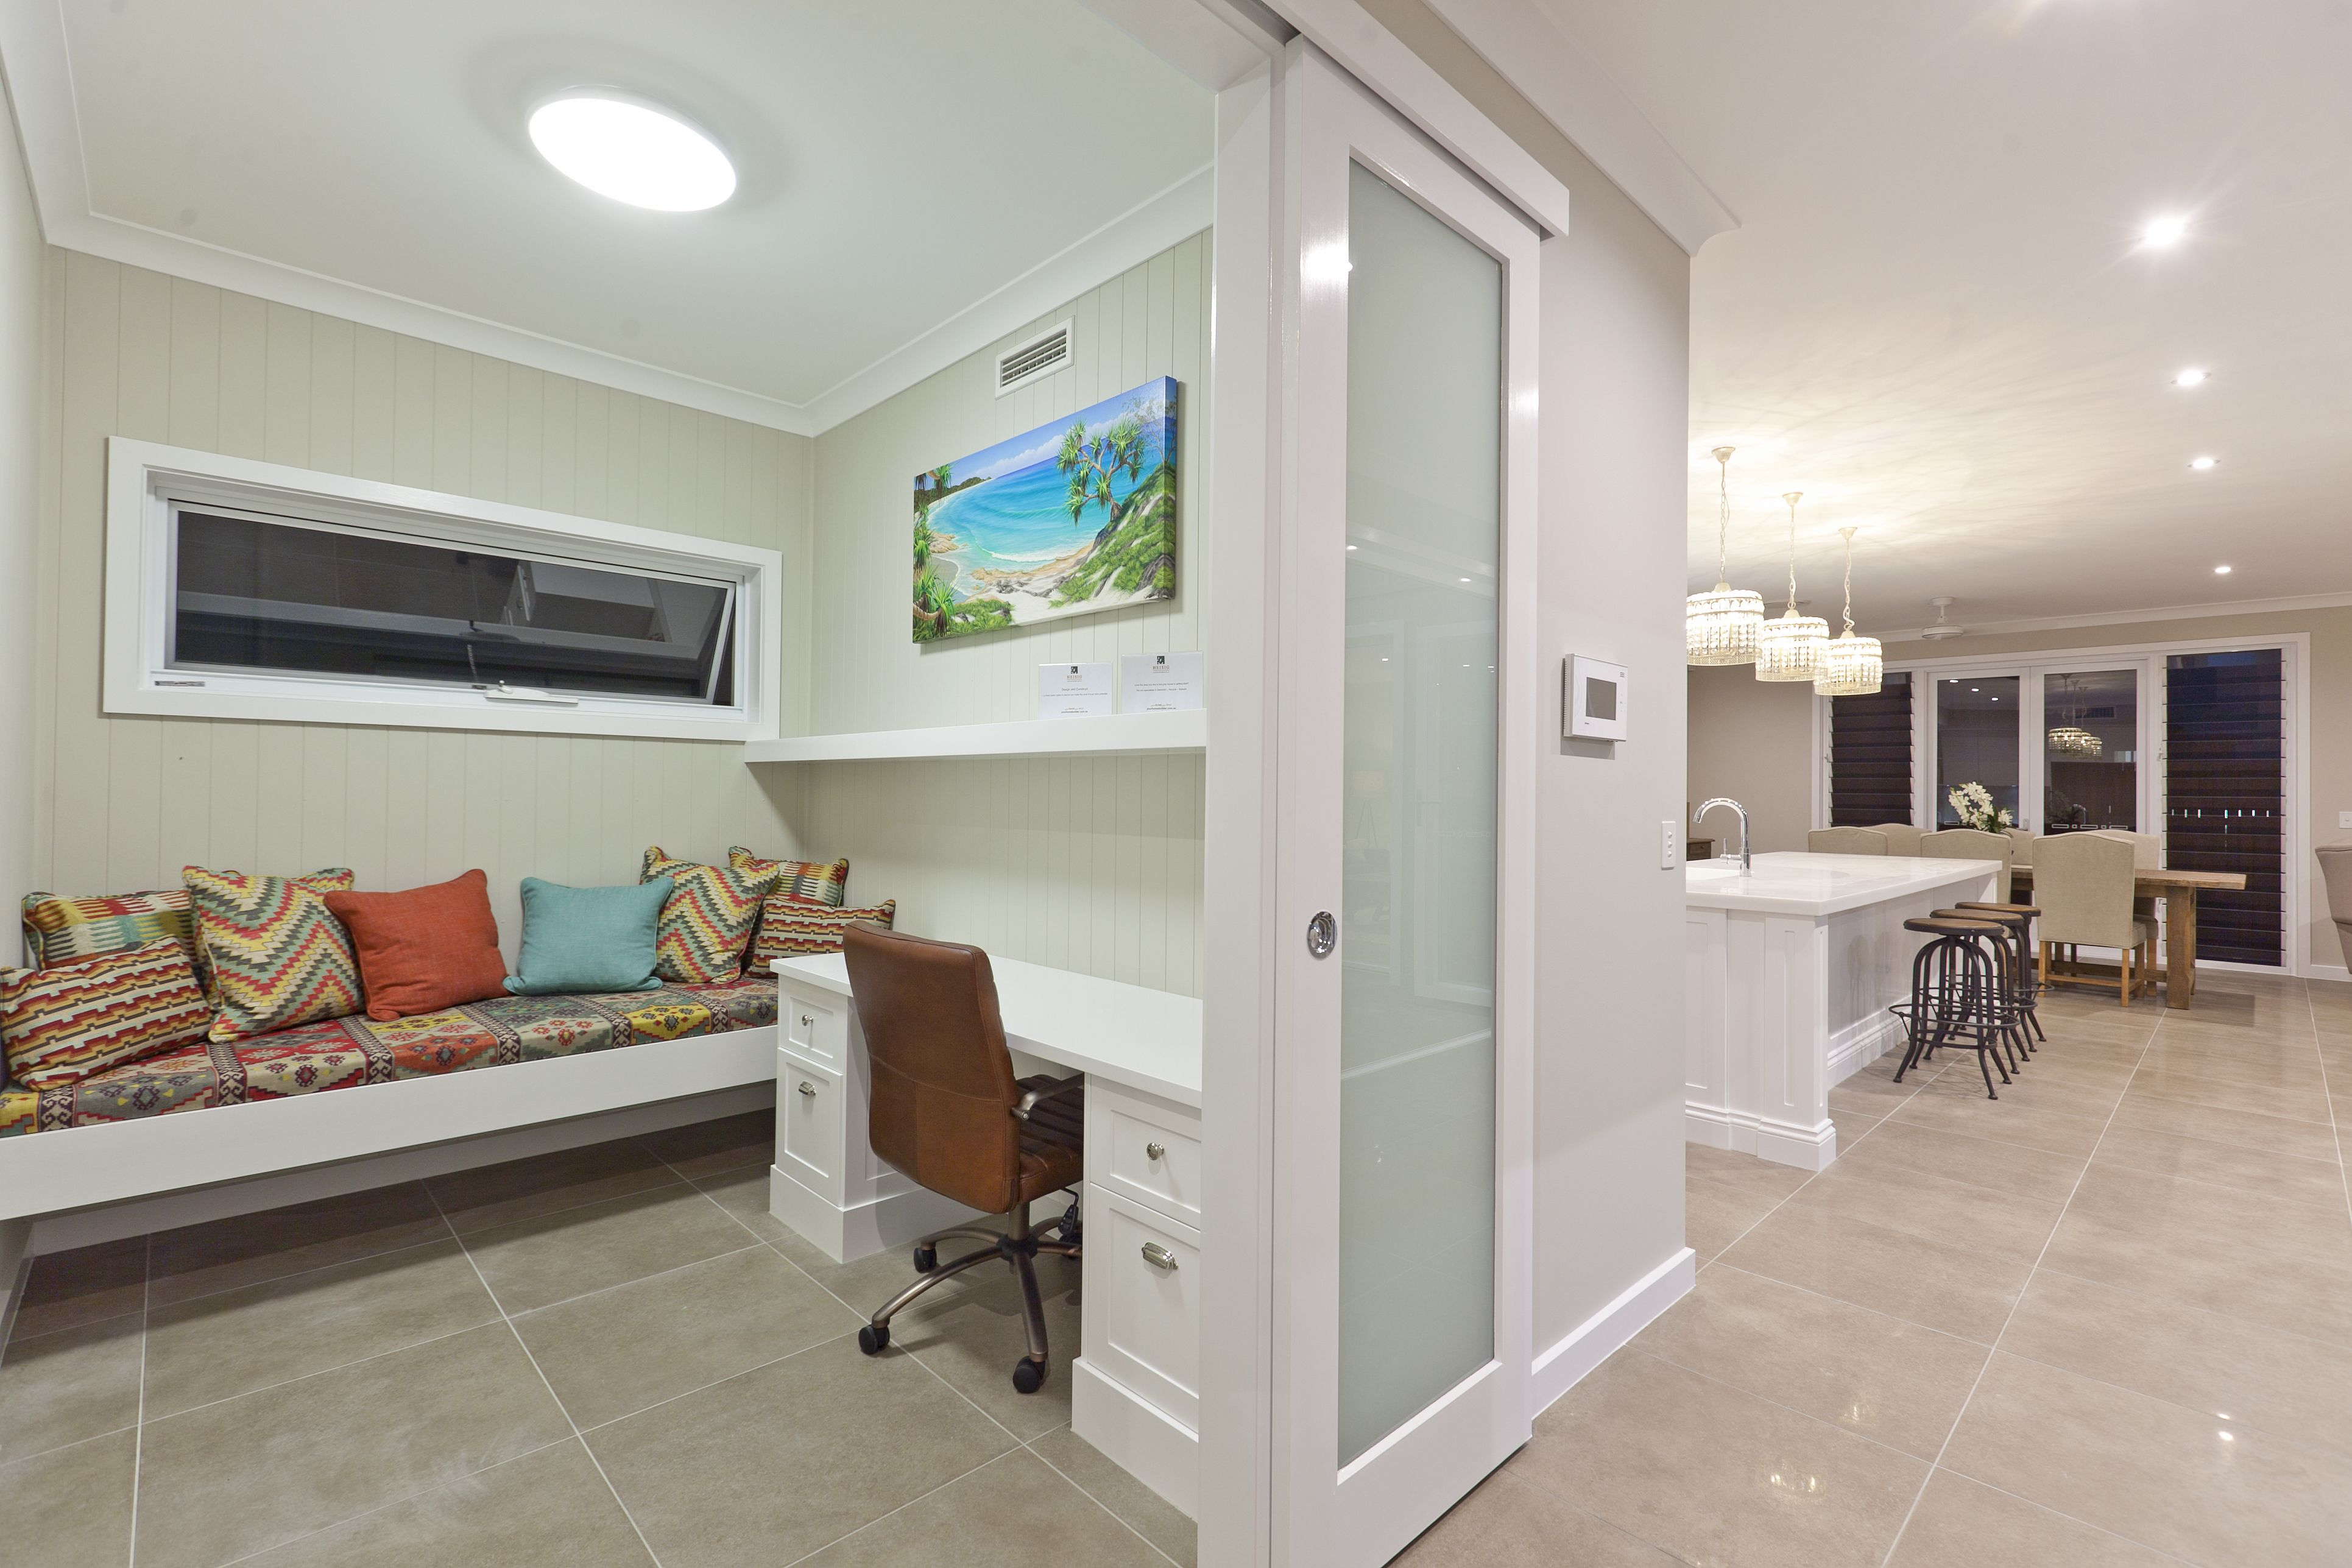 Royal wood tongue and groove panels - A Qld Home With Hardiegroove Lining An Interior Wall Lining Material Designed To Look Like